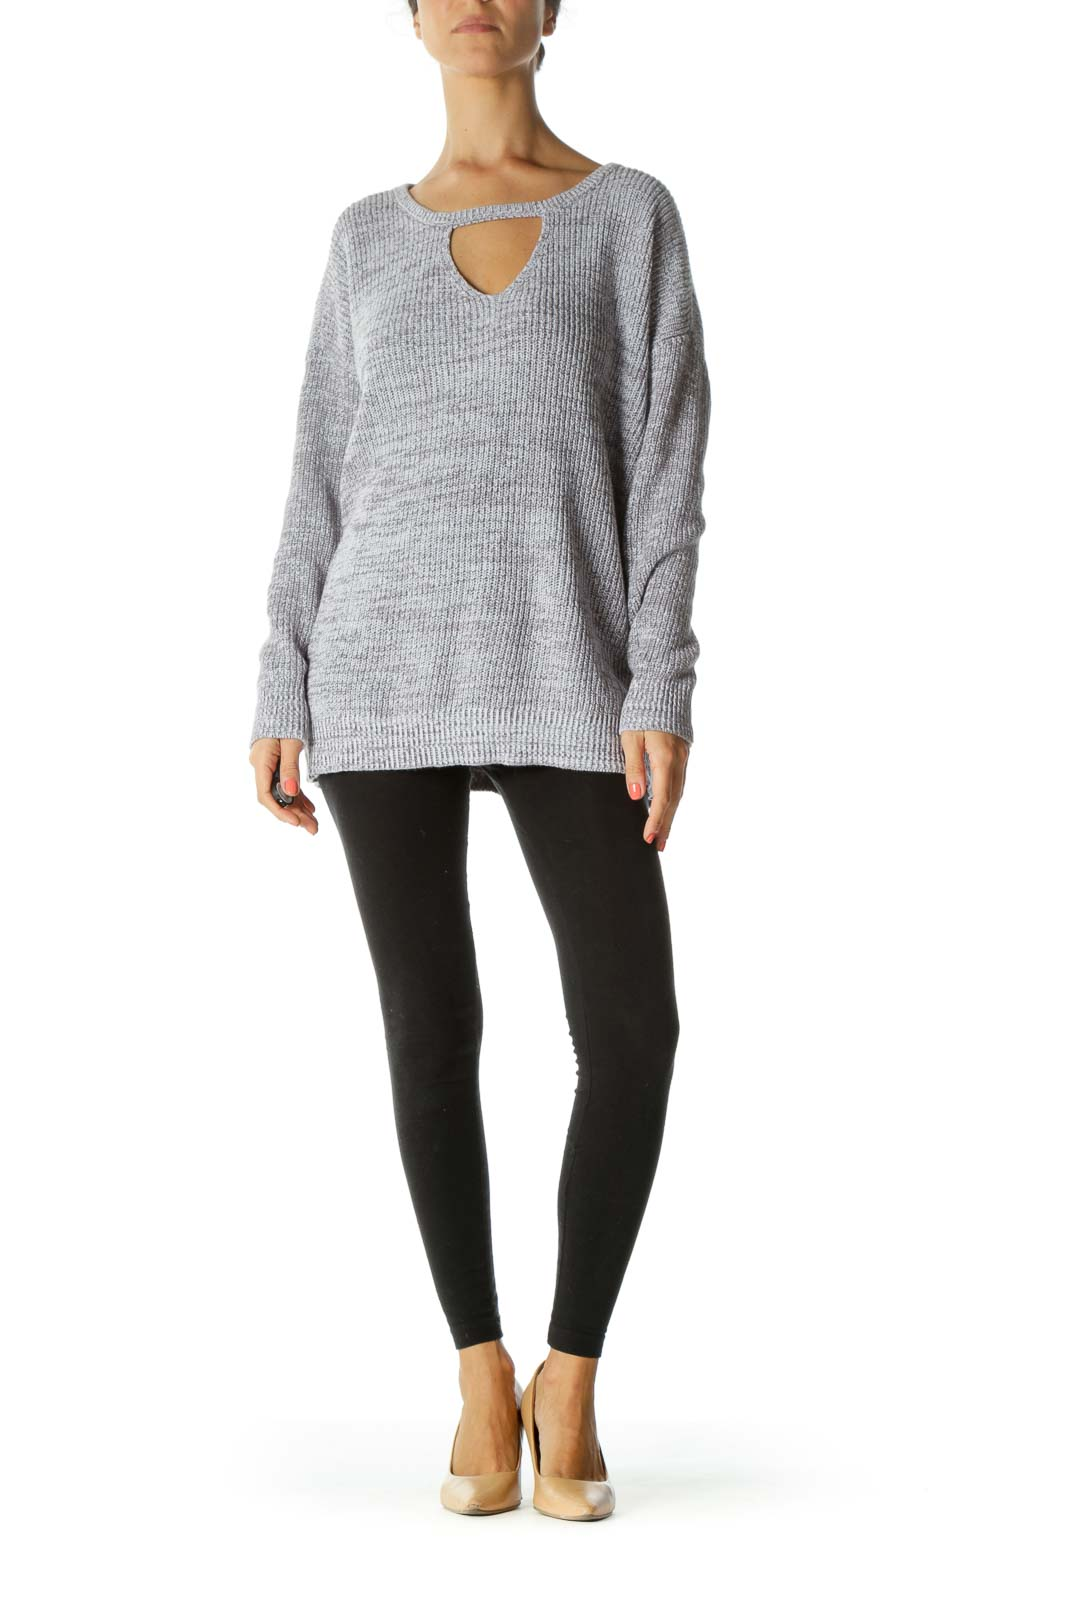 Gray White Keyhole Knit Plus Size Sweater